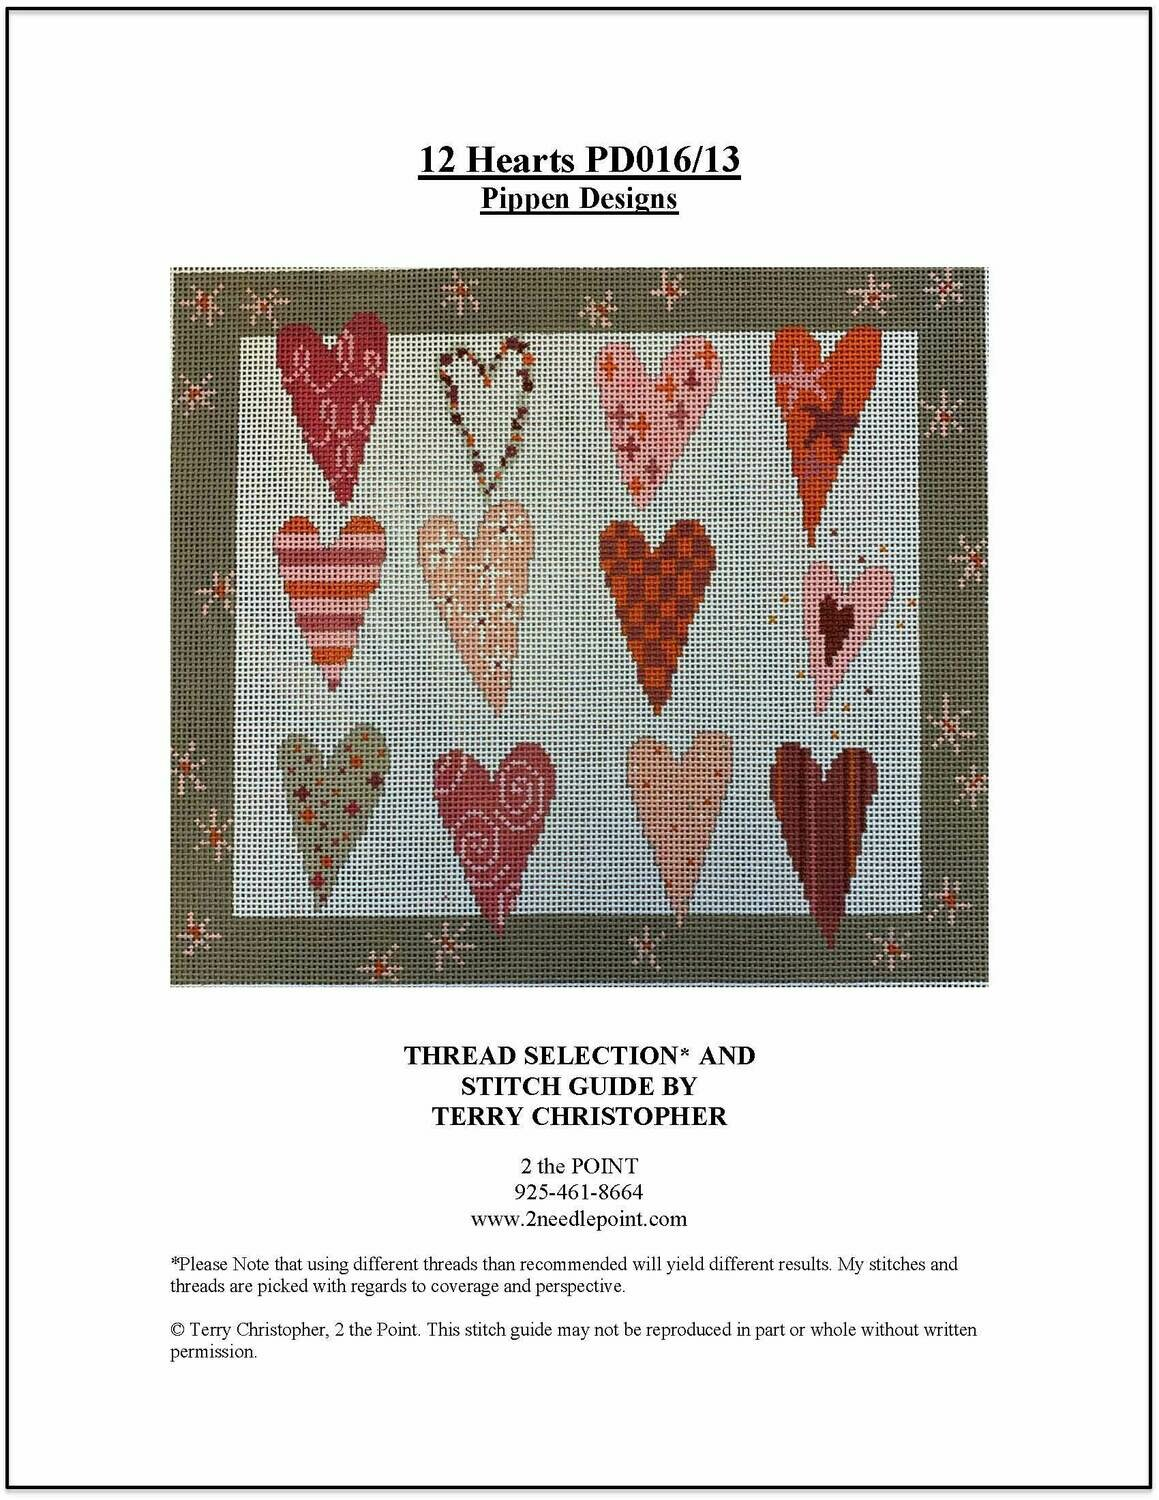 Pippen Designs, 12 Hearts PPD016/13 count